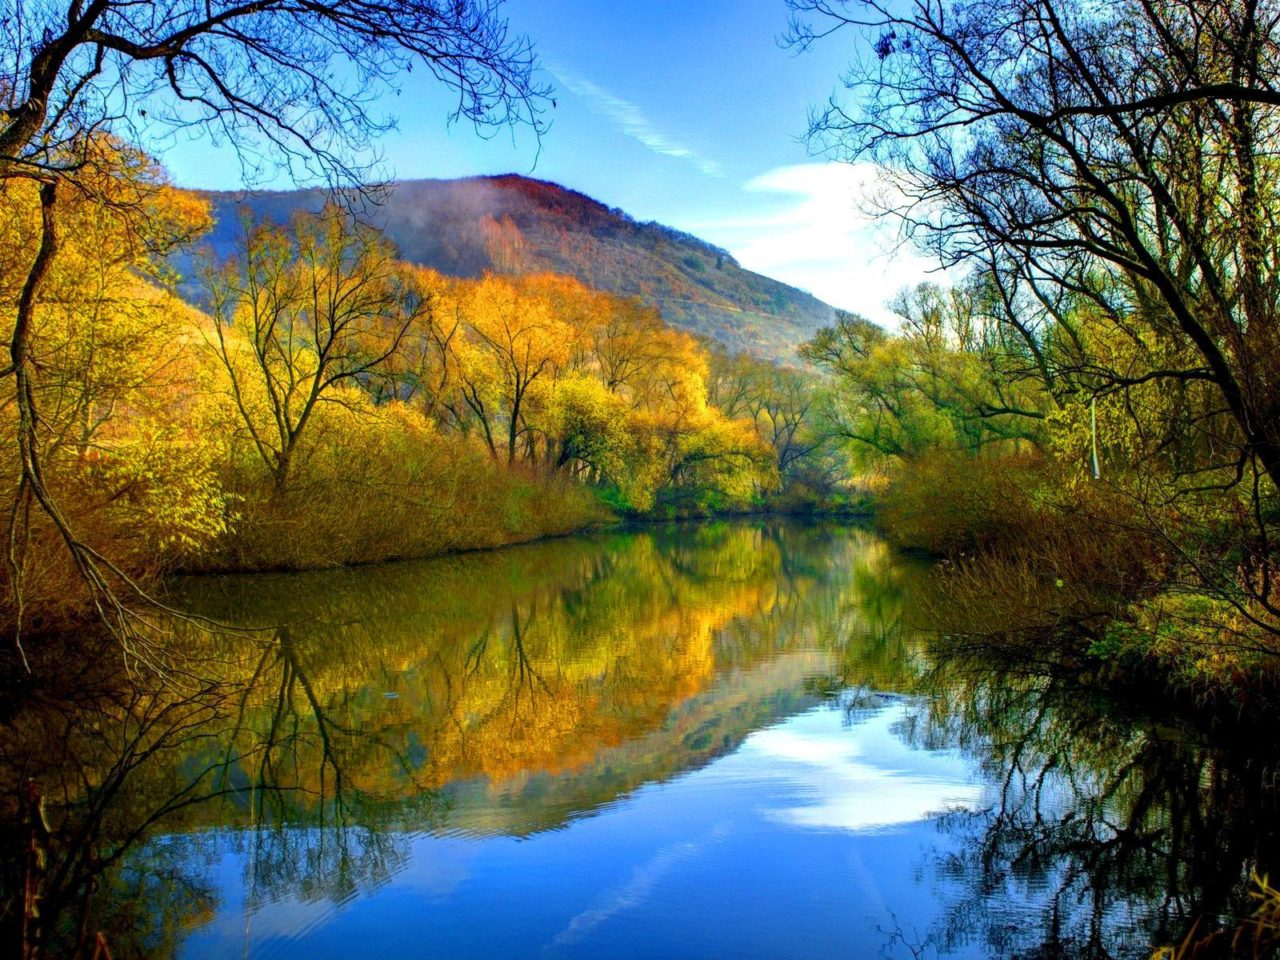 Fall Flowers Wallpaper Desktop Fall River Peaceful Water Willow With Yellow Leaves Blue